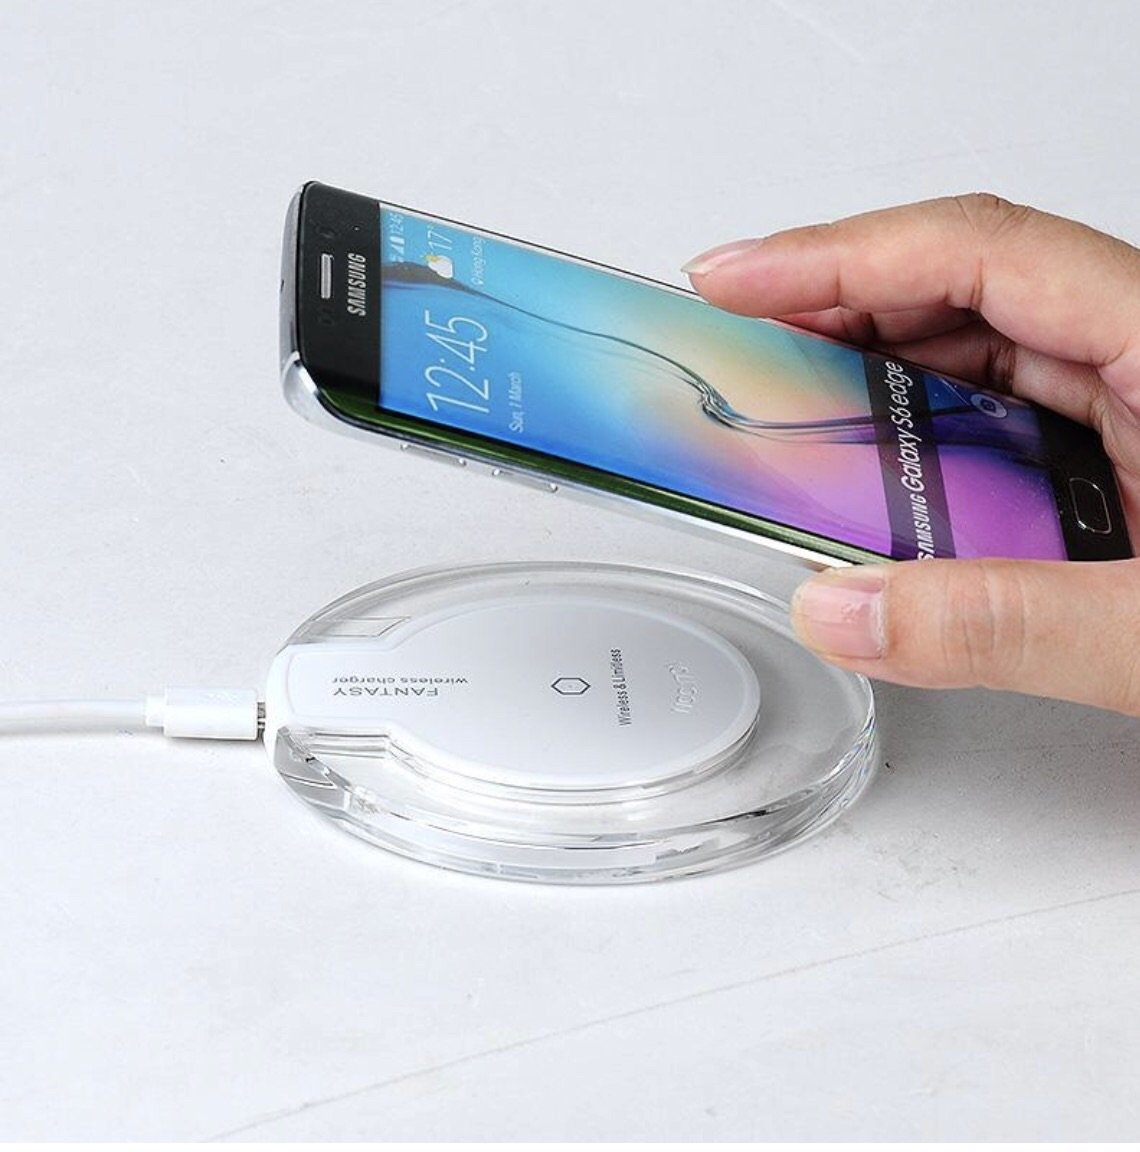 Snap Wireless Charger Data Wiring Circuit Diagram 76 Computerrelatedcircuit Charging Pad Android Feature Phones Explore And Rh Exploreandsnap Com Moto Car Review